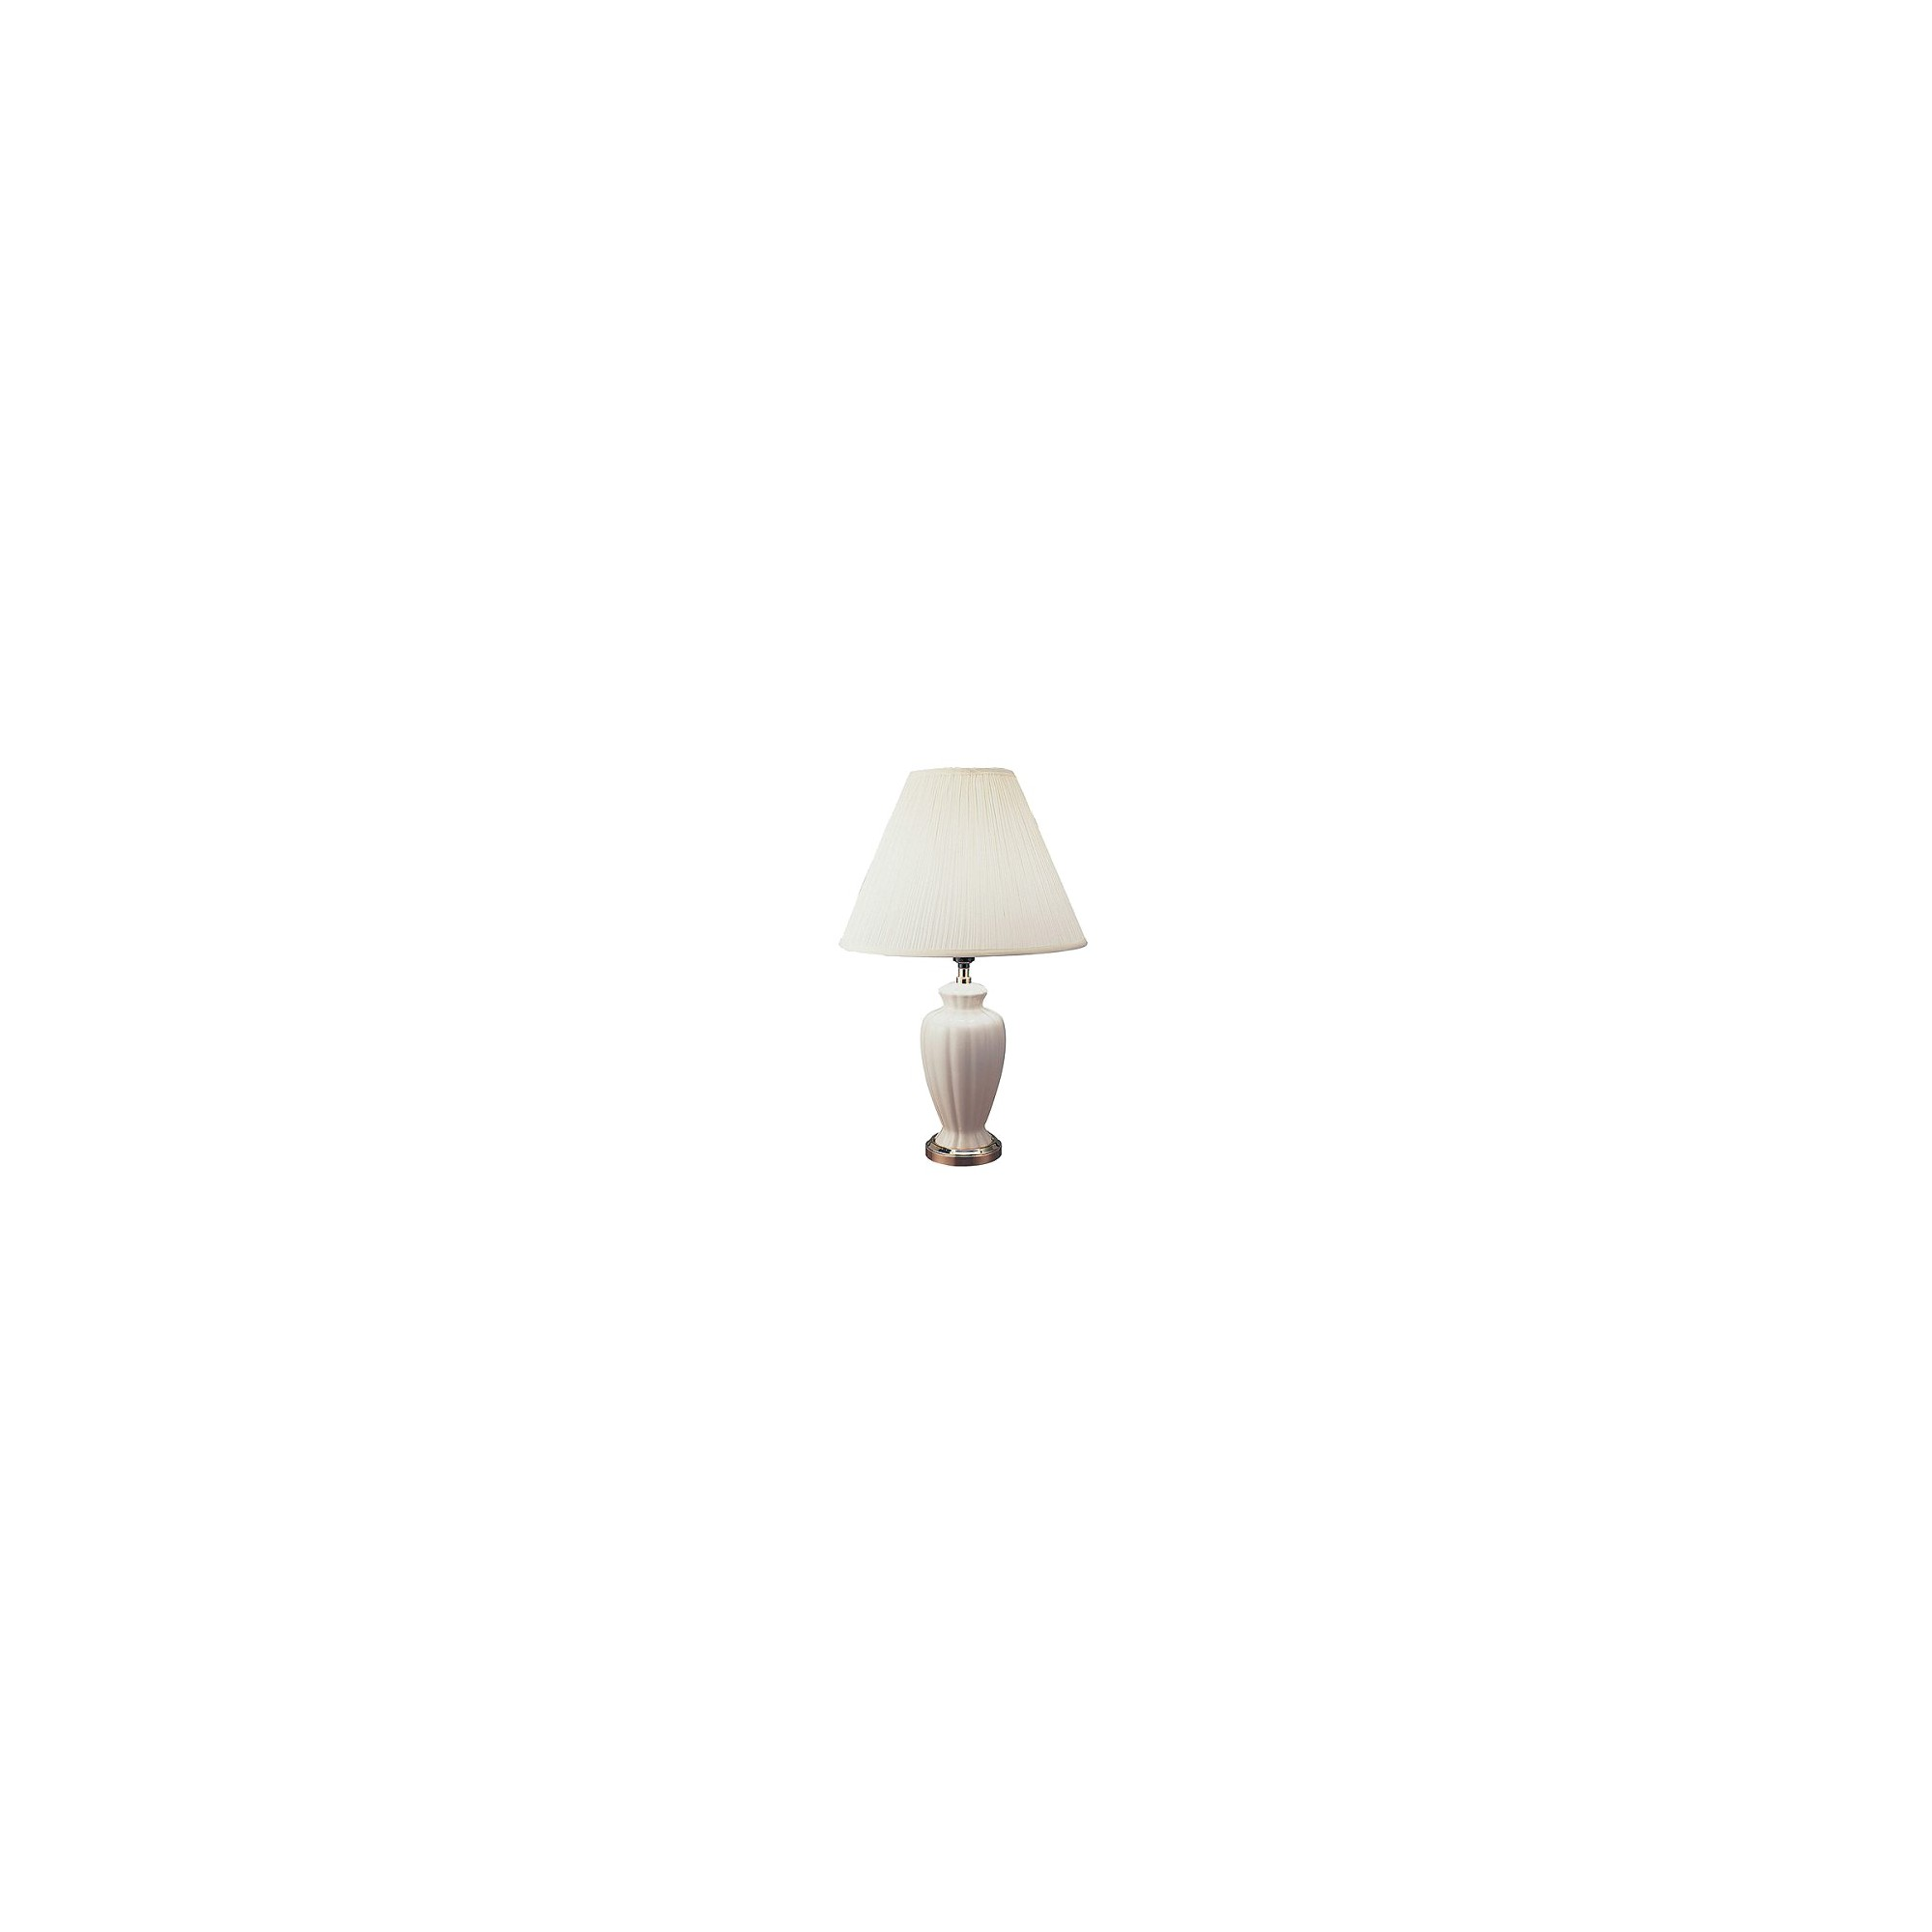 Ceramic Table Lamp (Lamp Only) - Ivory